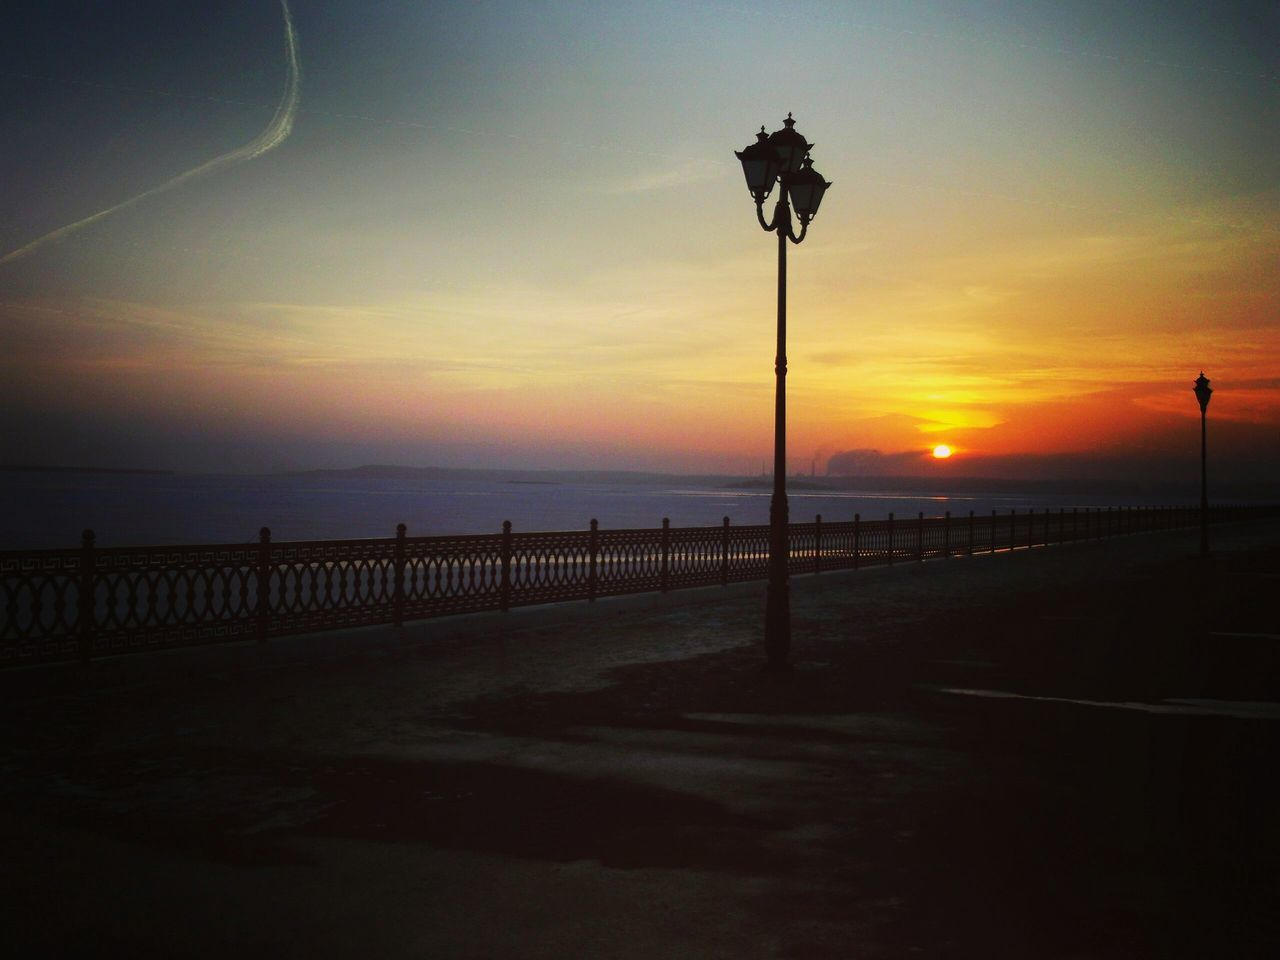 sunset, silhouette, sea, nature, scenics, beauty in nature, tranquil scene, tranquility, sky, street light, outdoors, no people, beach, horizon over water, water